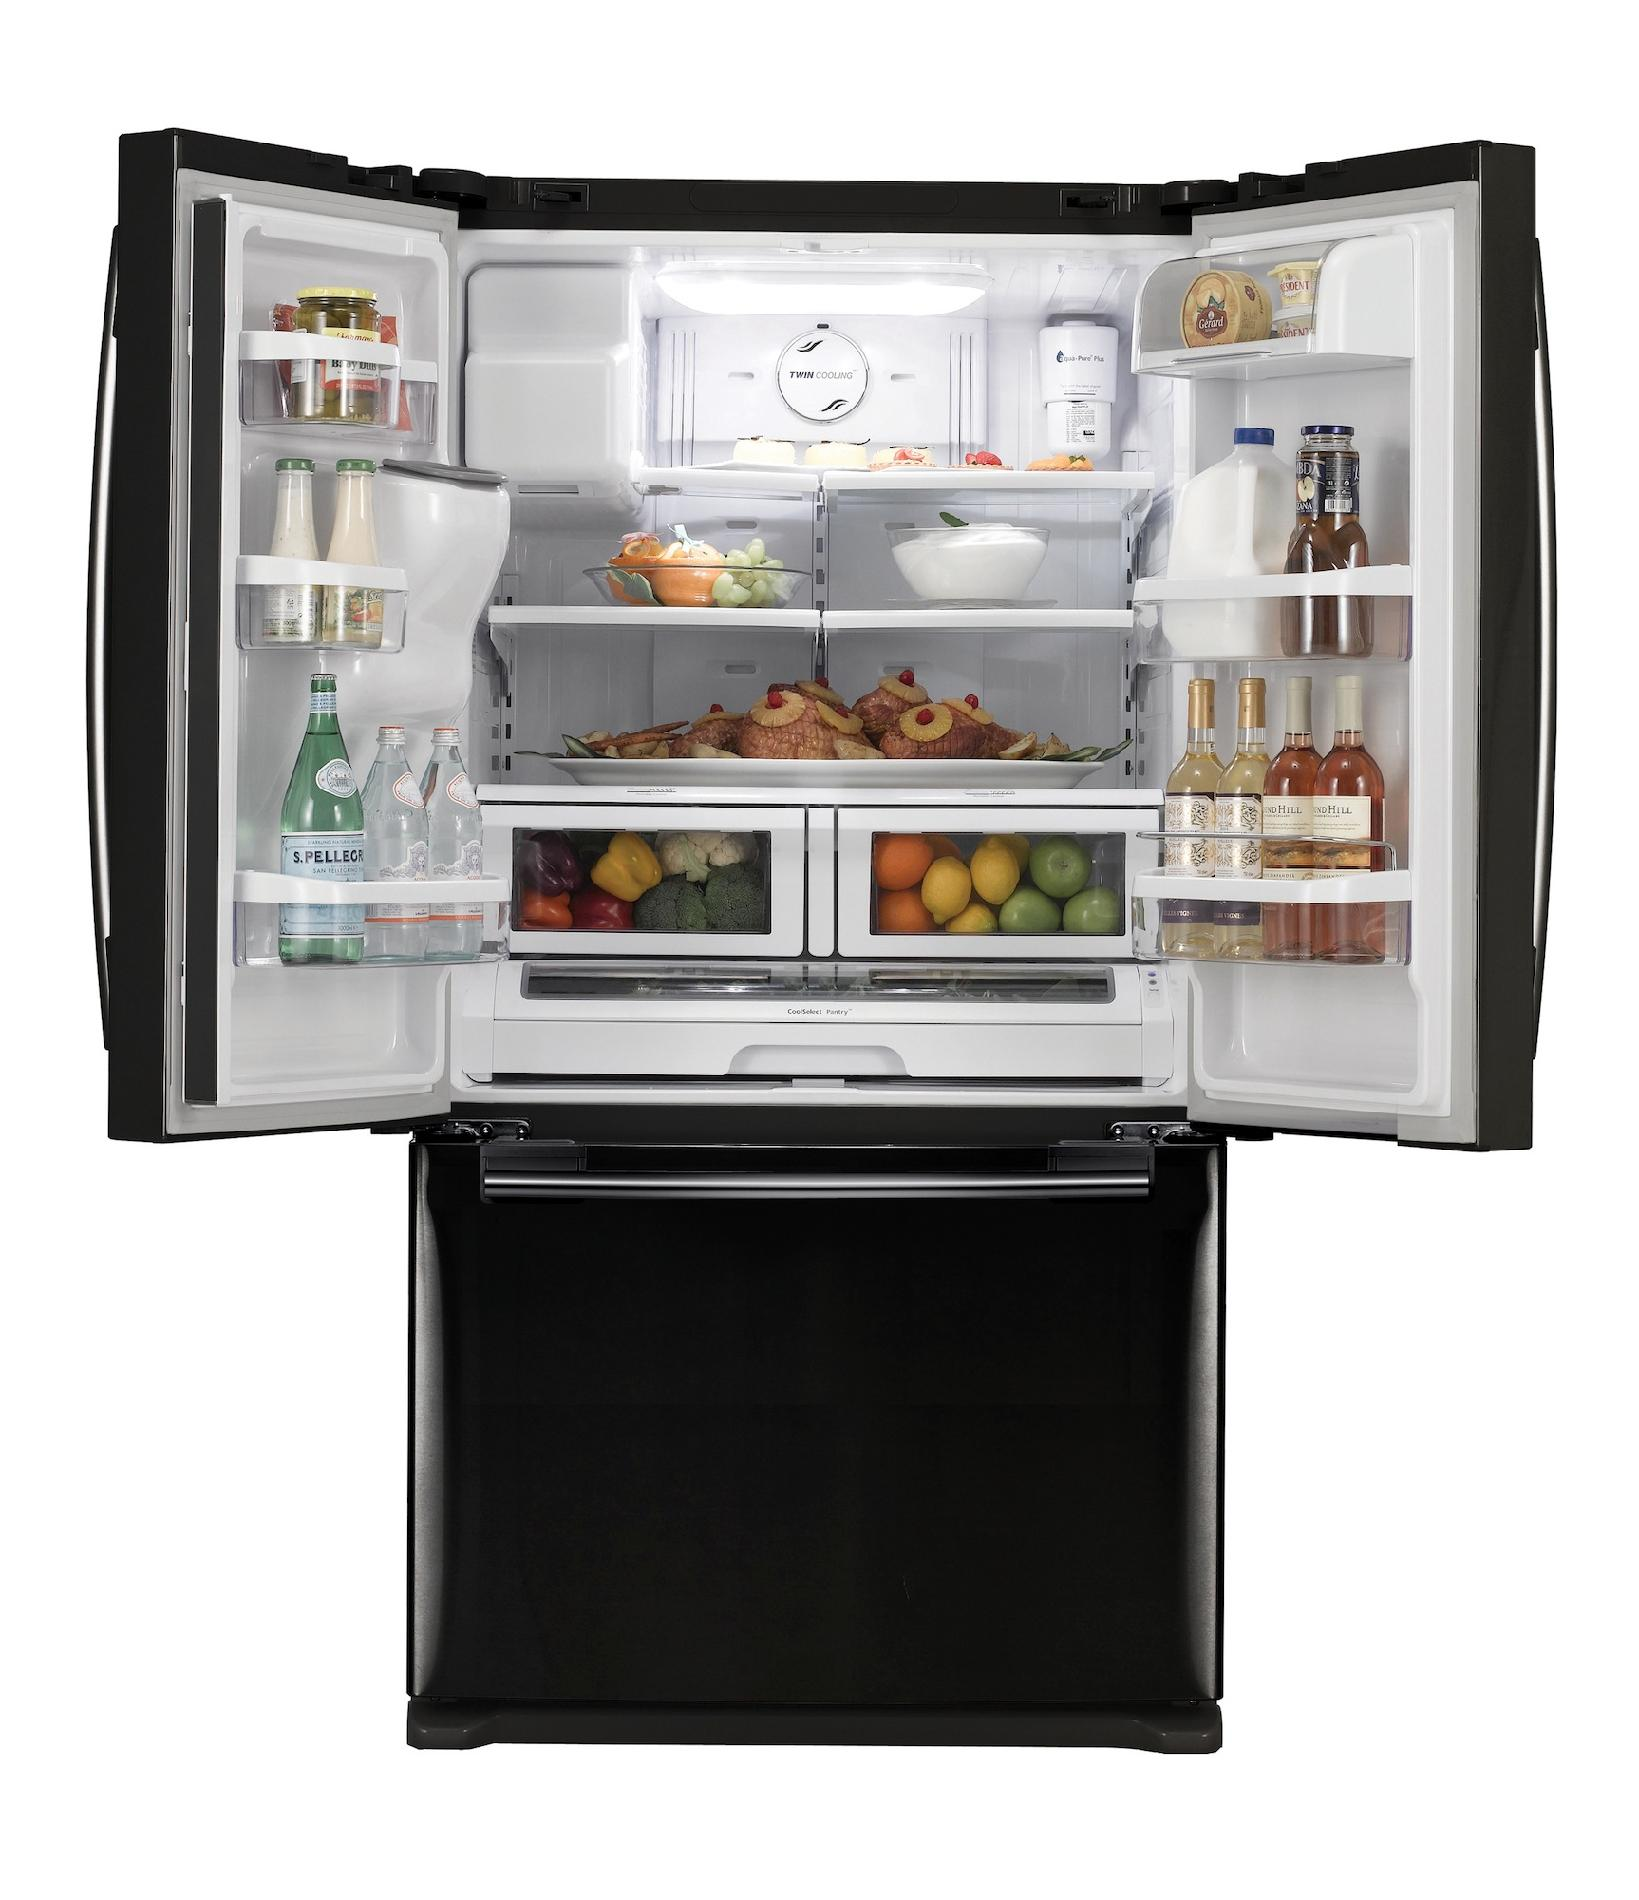 Samsung 26 cu. ft. French Door Refrigerator - Black